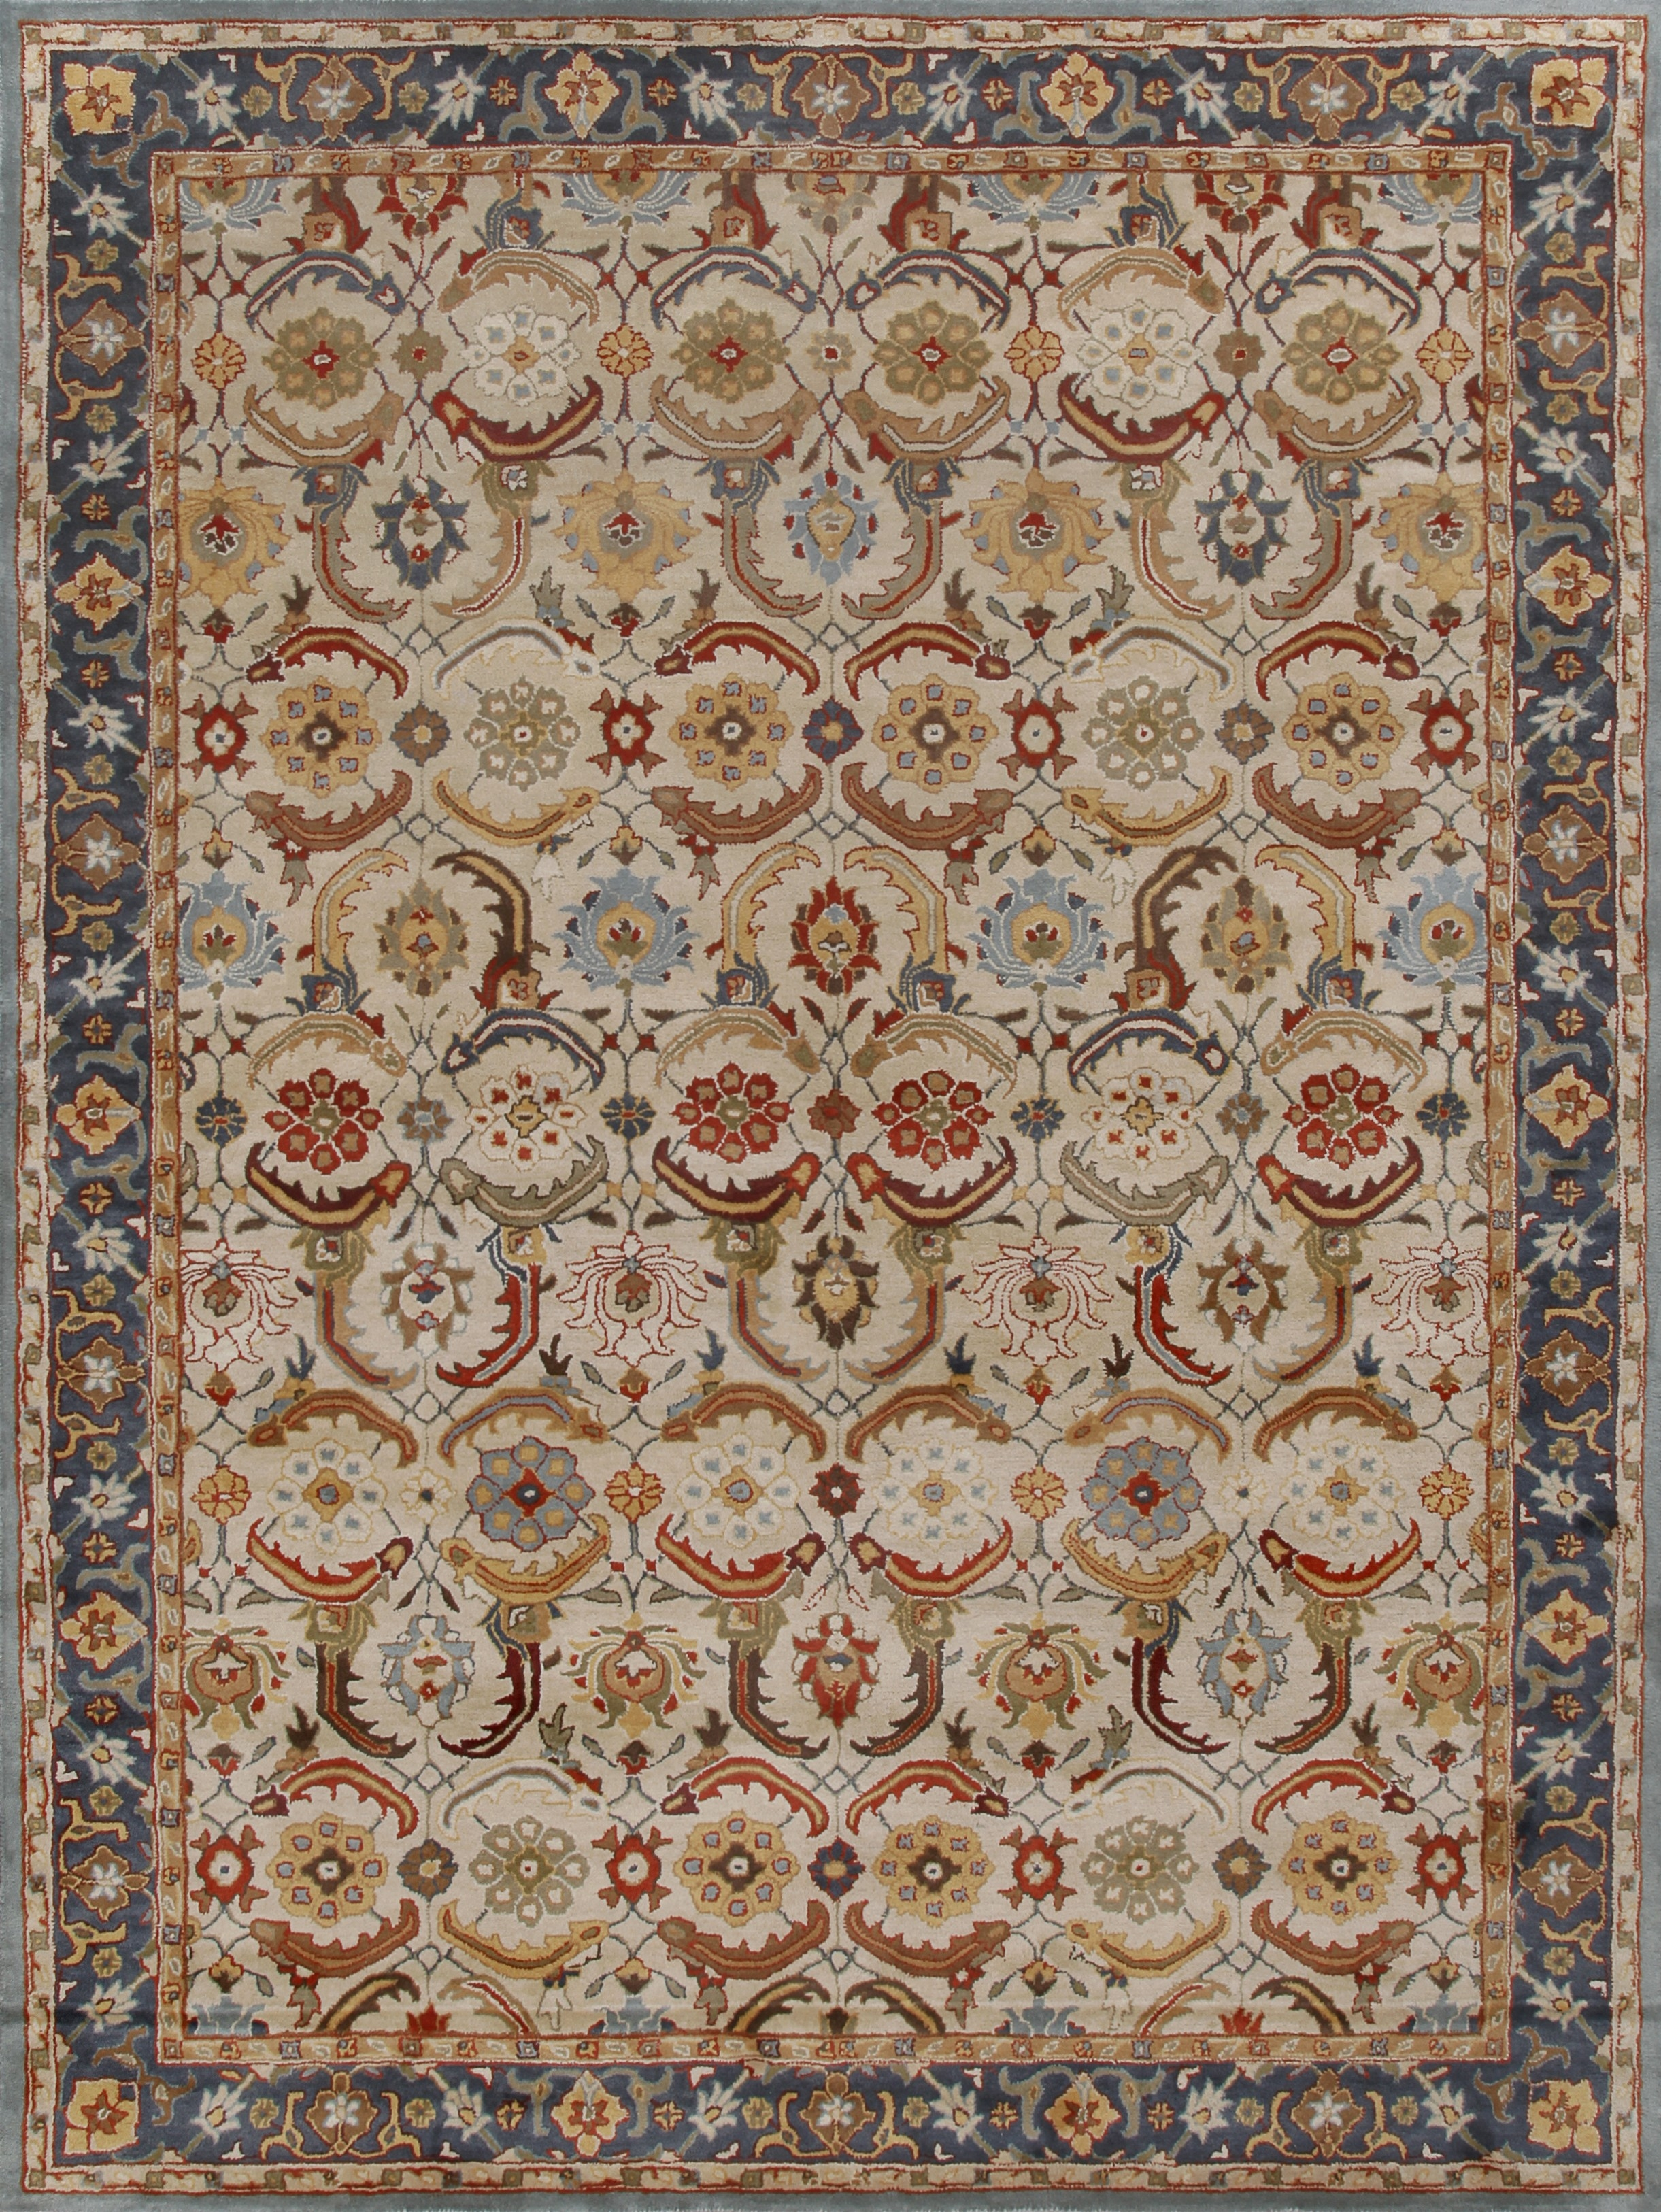 Persian Style Rugs Uk Roselawnlutheran With Regard To Persian Style Wool Rugs (View 10 of 15)